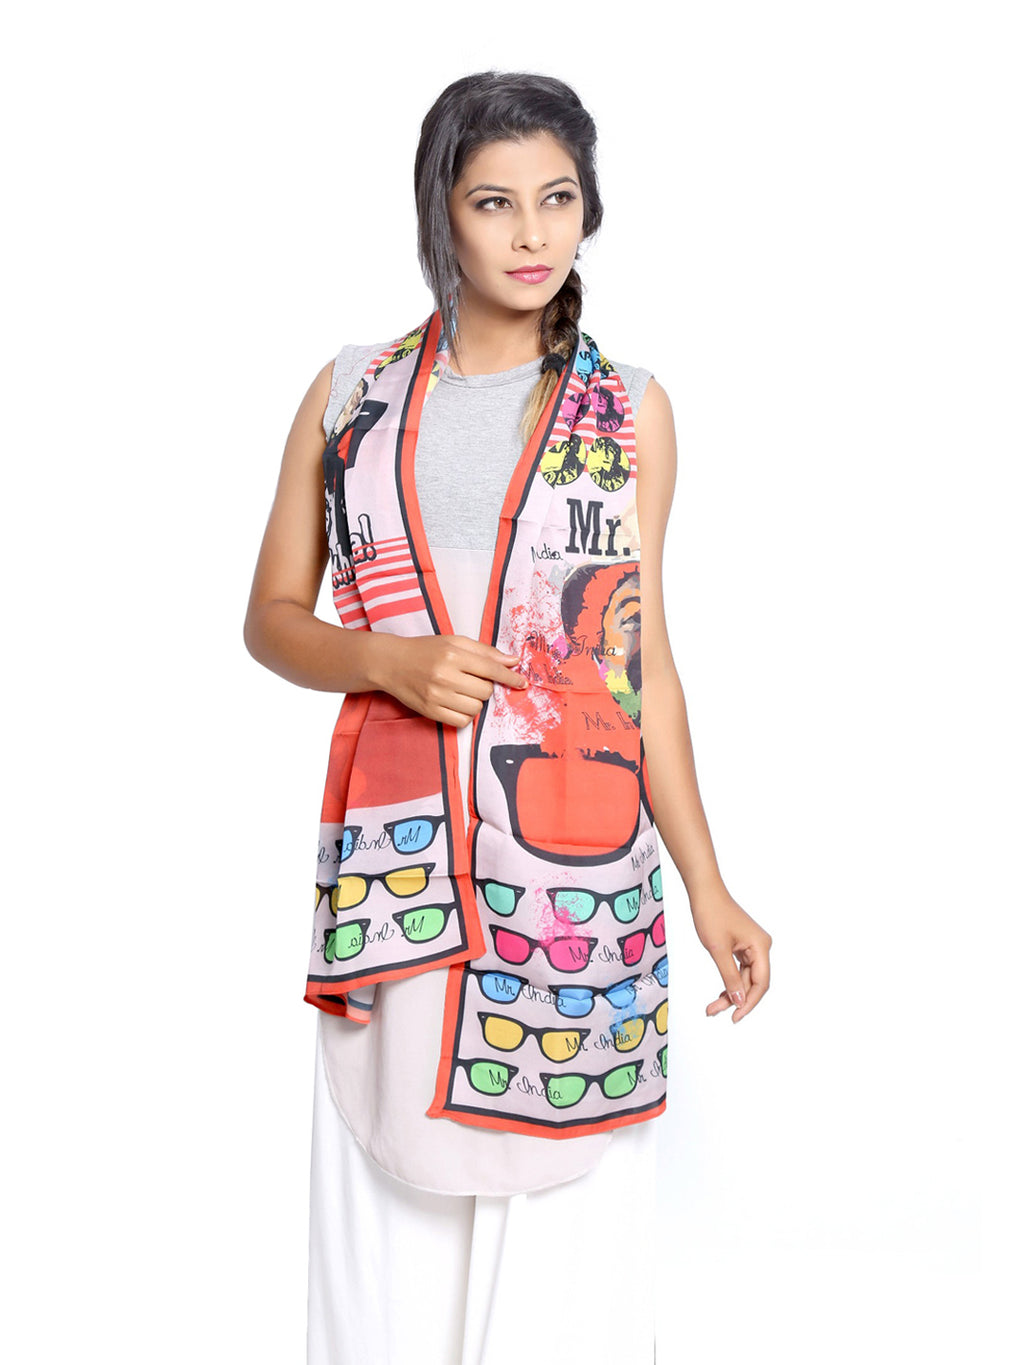 Bollywood Graphic Printed Scarf - Mr. India